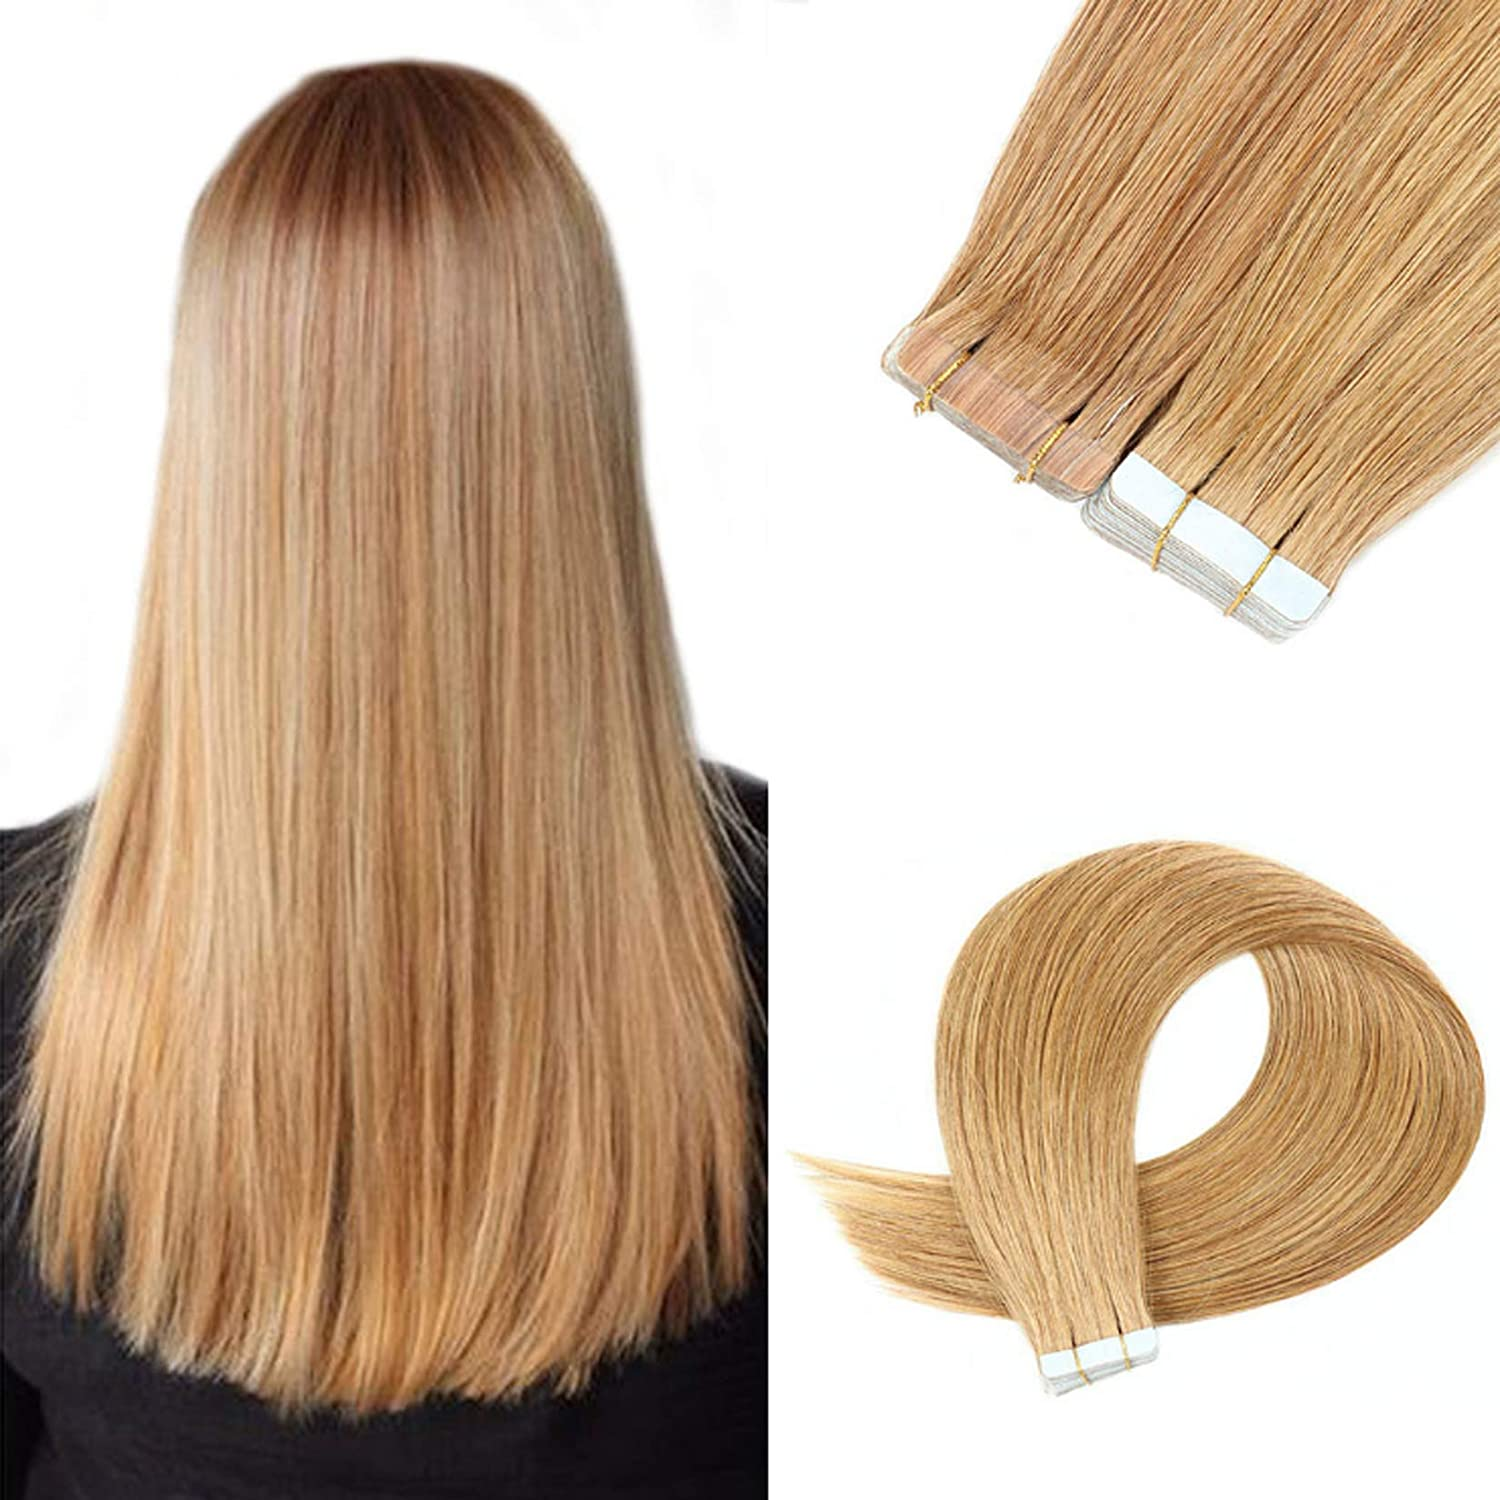 Tape Dallas Mall in Hair Extensions Human Extension Hai Remy Arlington Mall 16-24 Inch